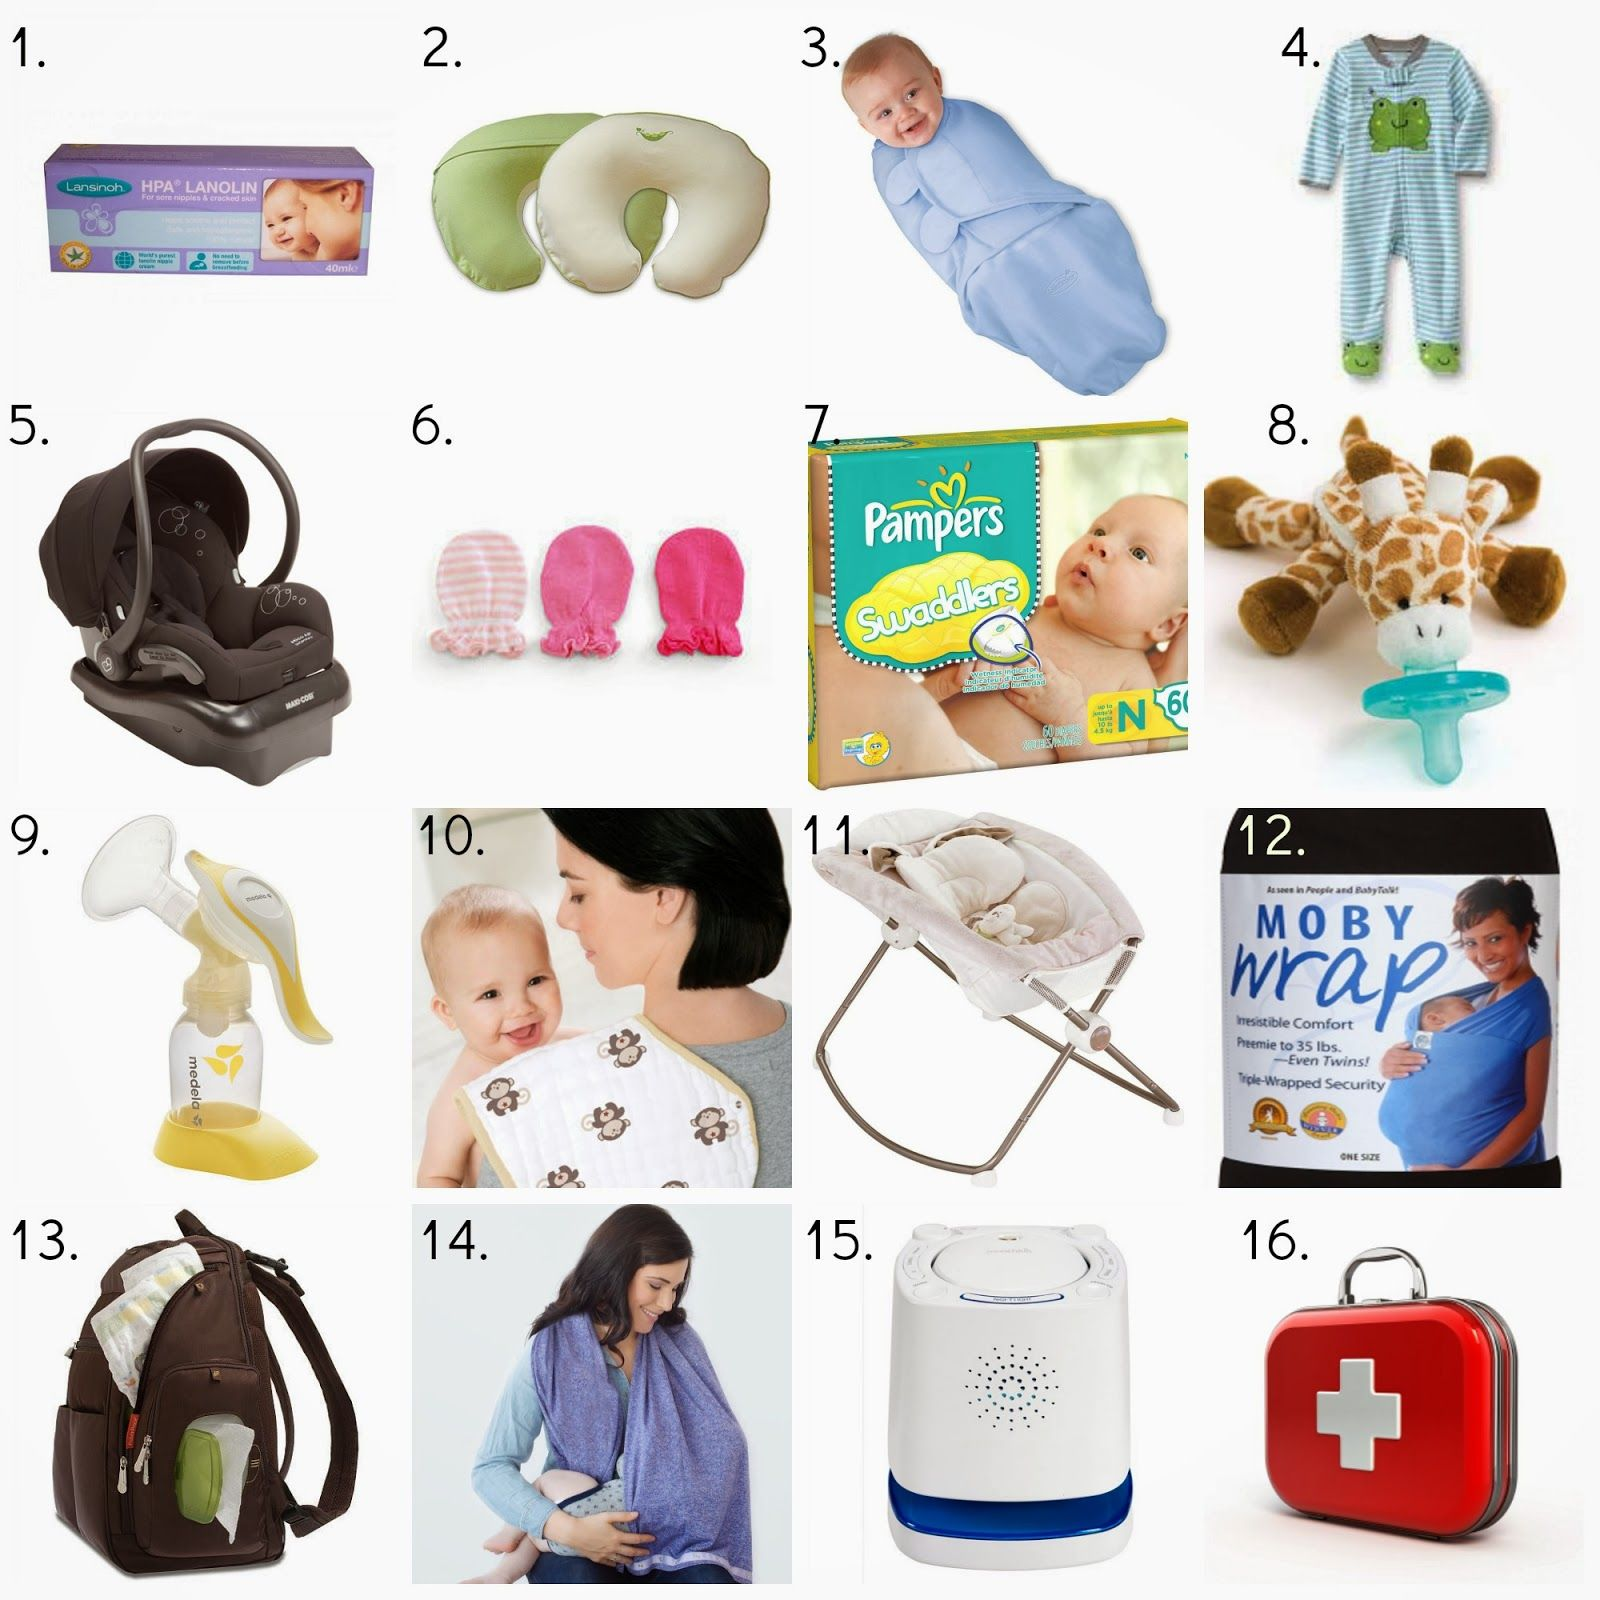 Baby week giveaway 10 angelcare infant bath support andrea dekker - Tall Mom Tiny Baby 16 Newborn Necessities Baby Must Have Items Tall Mom S Top Picks